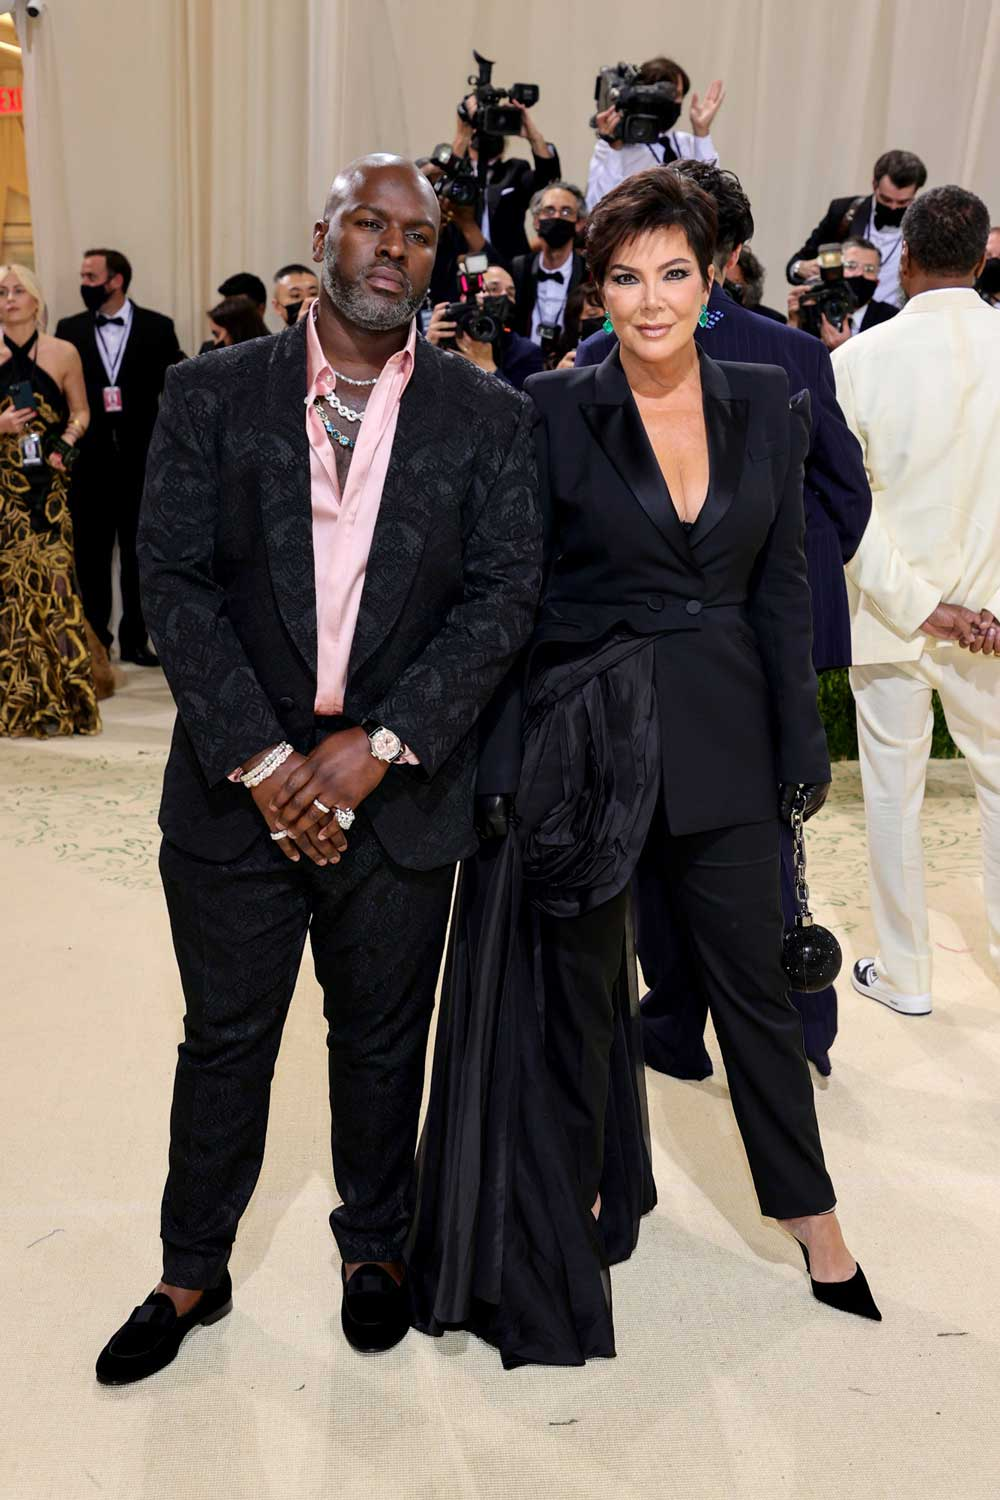 Corey Gamble got wristchecked by Nick Gould (better known as @niccoloy on IG), wearing a Patek Philippe 5208 perpetual calendar minute repeater, he is seen here with his partner, Kris Jenner